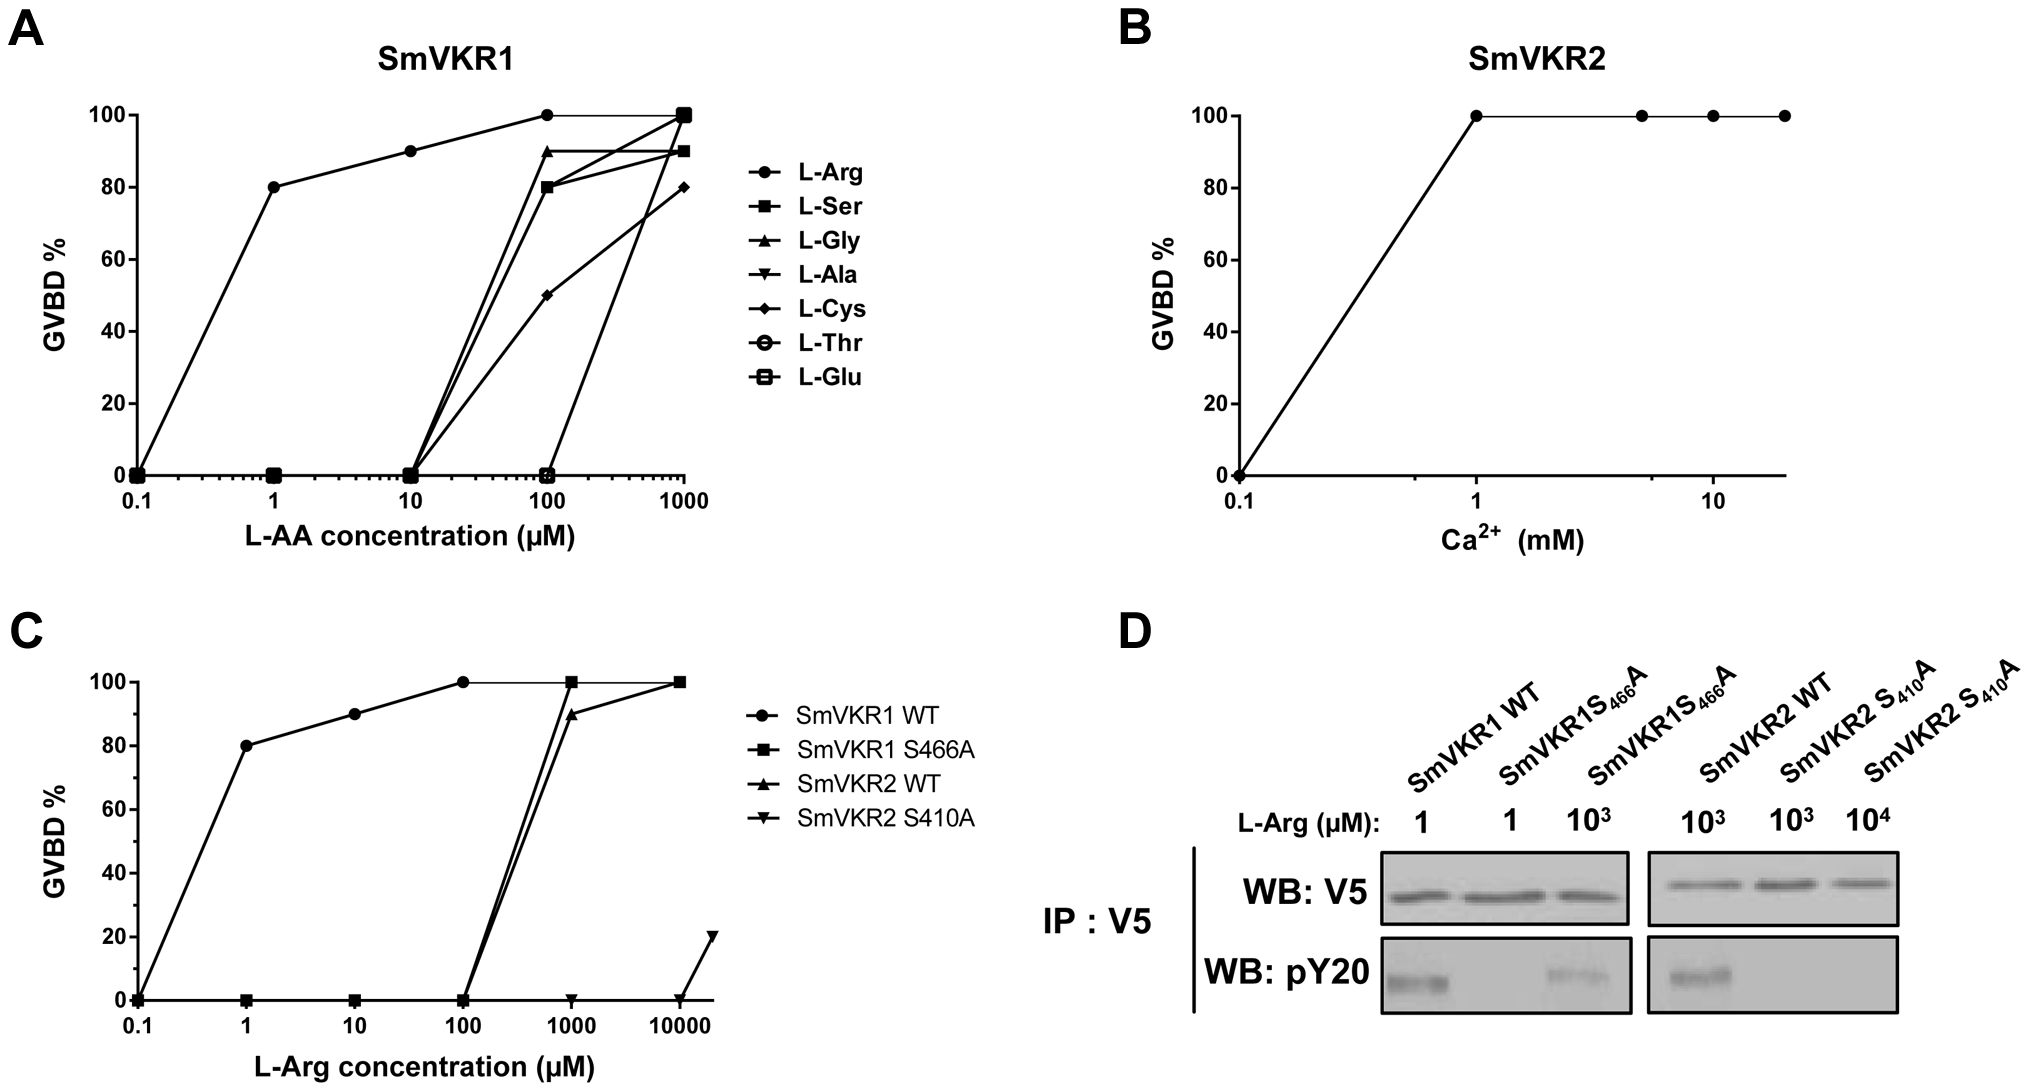 Ligand determination of SmVKR1 and SmVKR2. Importance of a conserved Ser residue of the VFT domain in amino-acid binding and activation of the receptors.